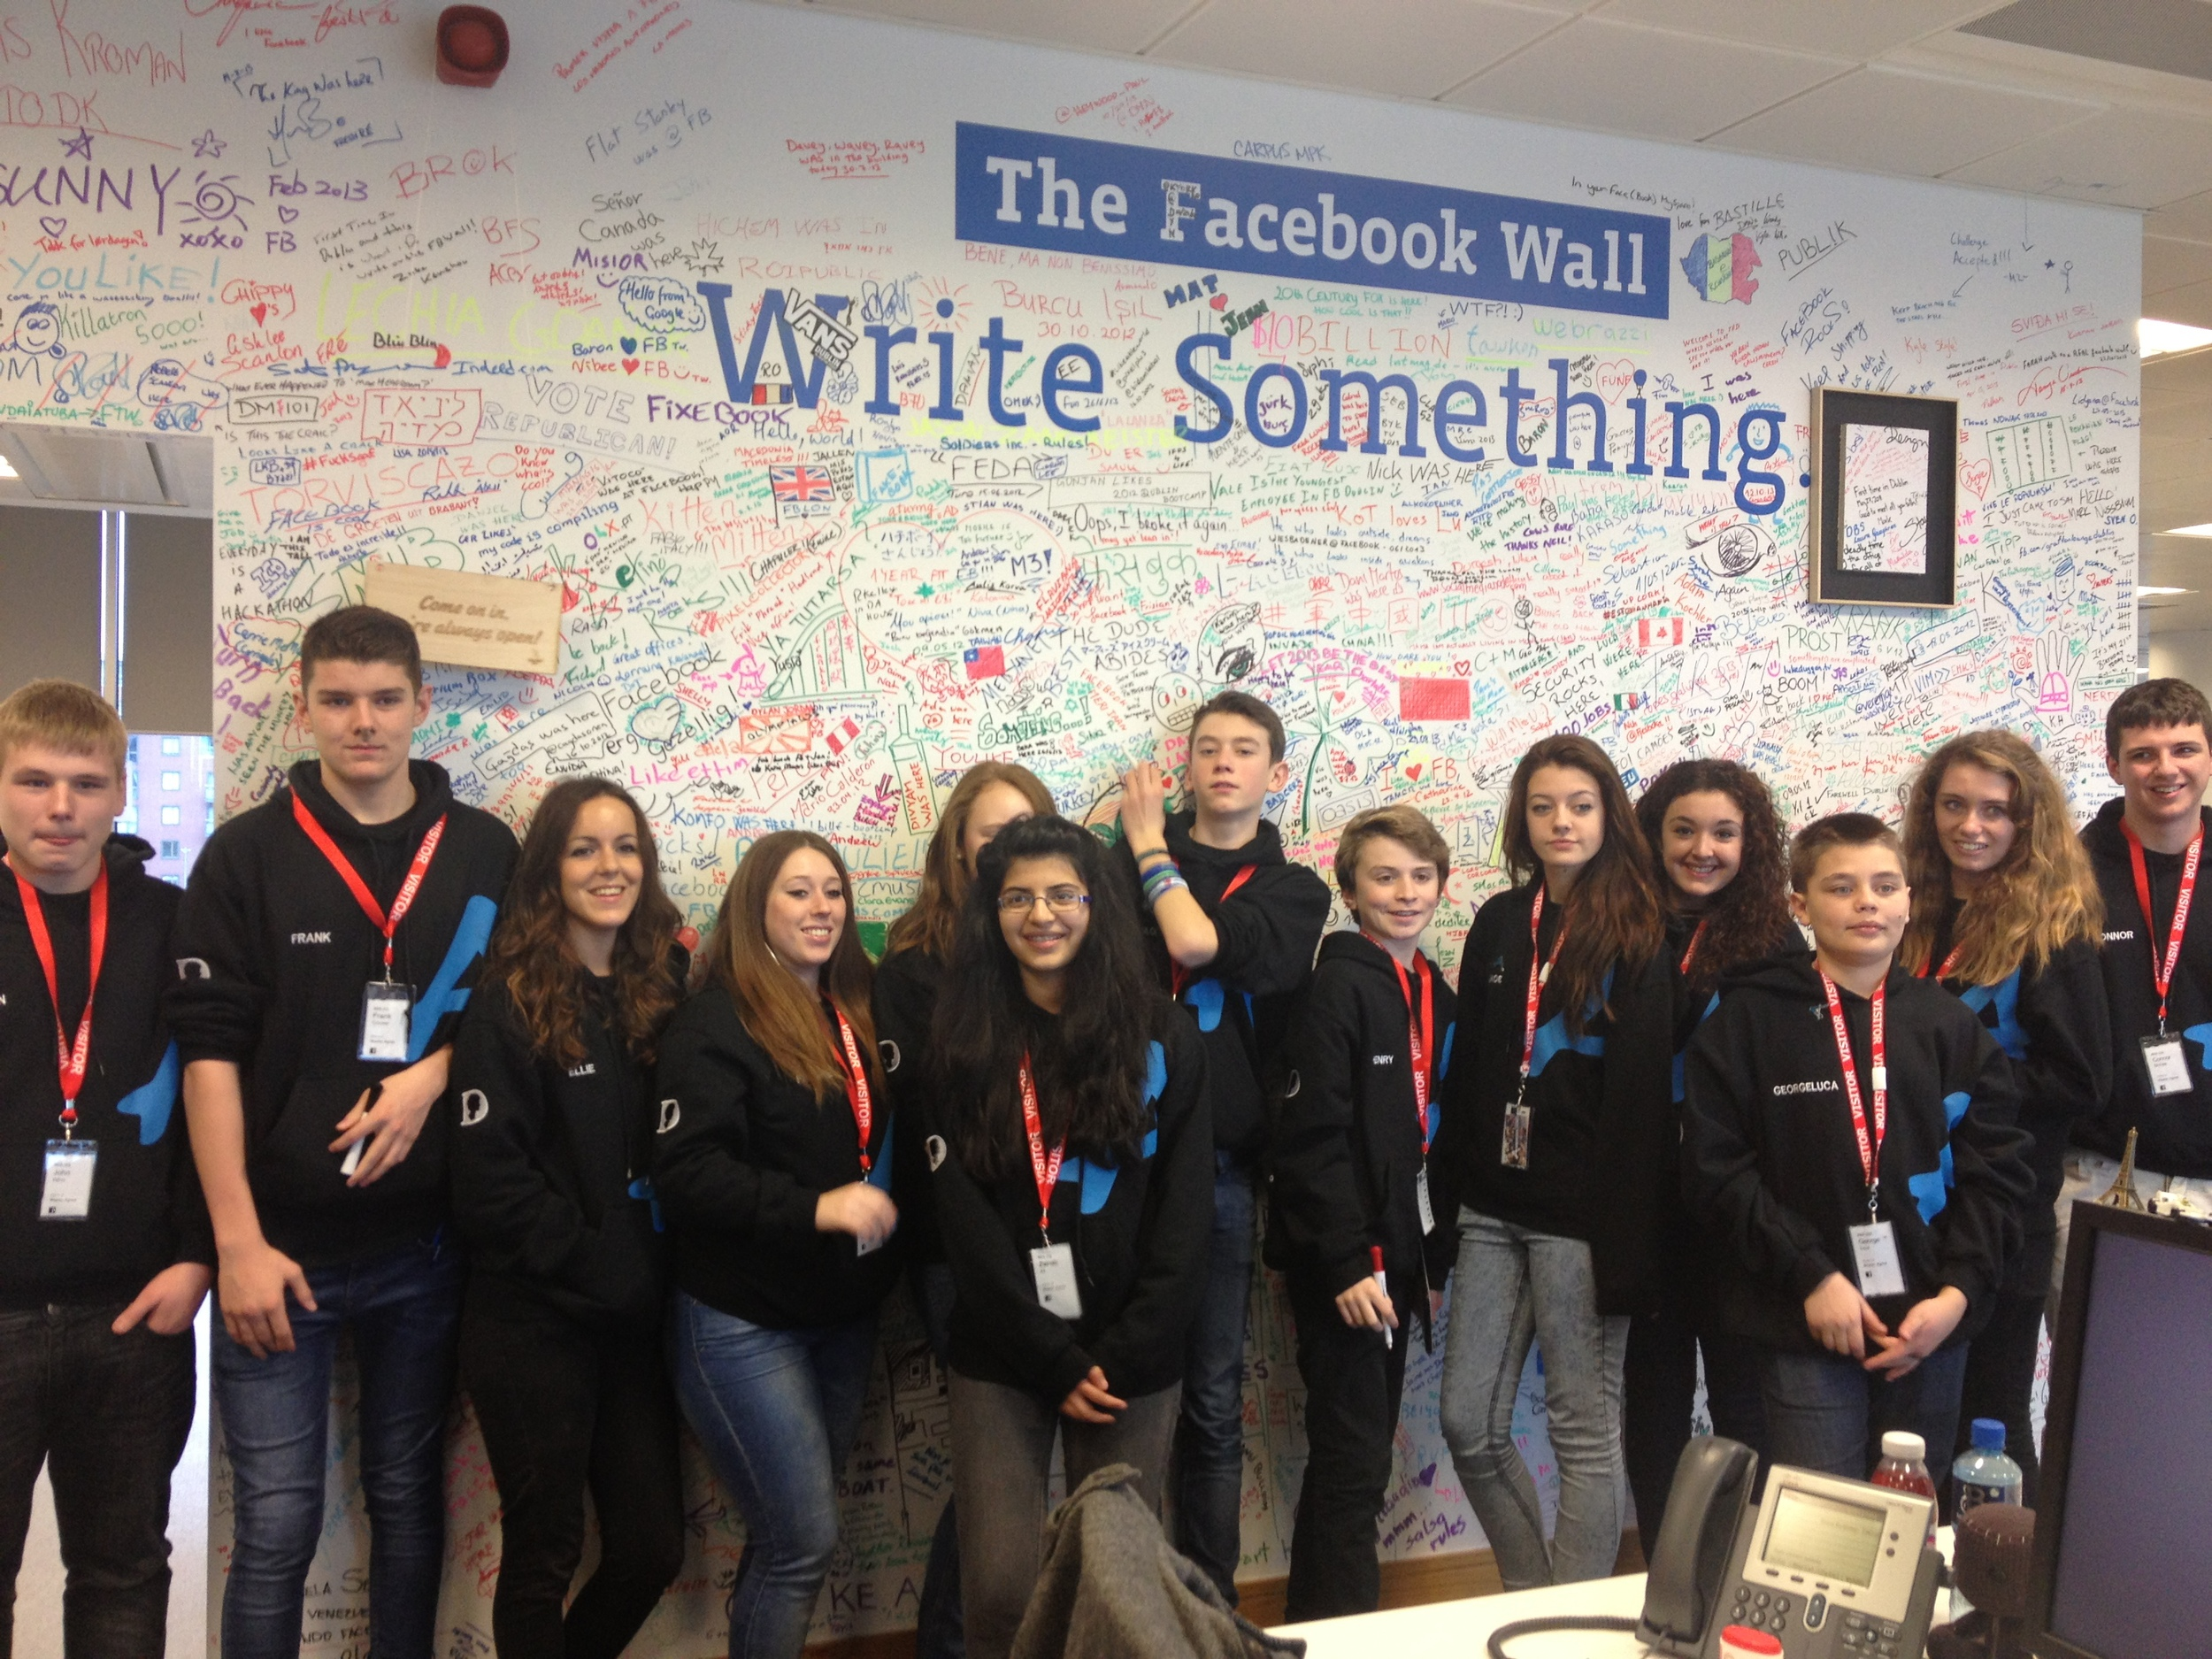 Jack and the Youth Board visit Facebook's Headquarters in Dublin to learn about e-safety